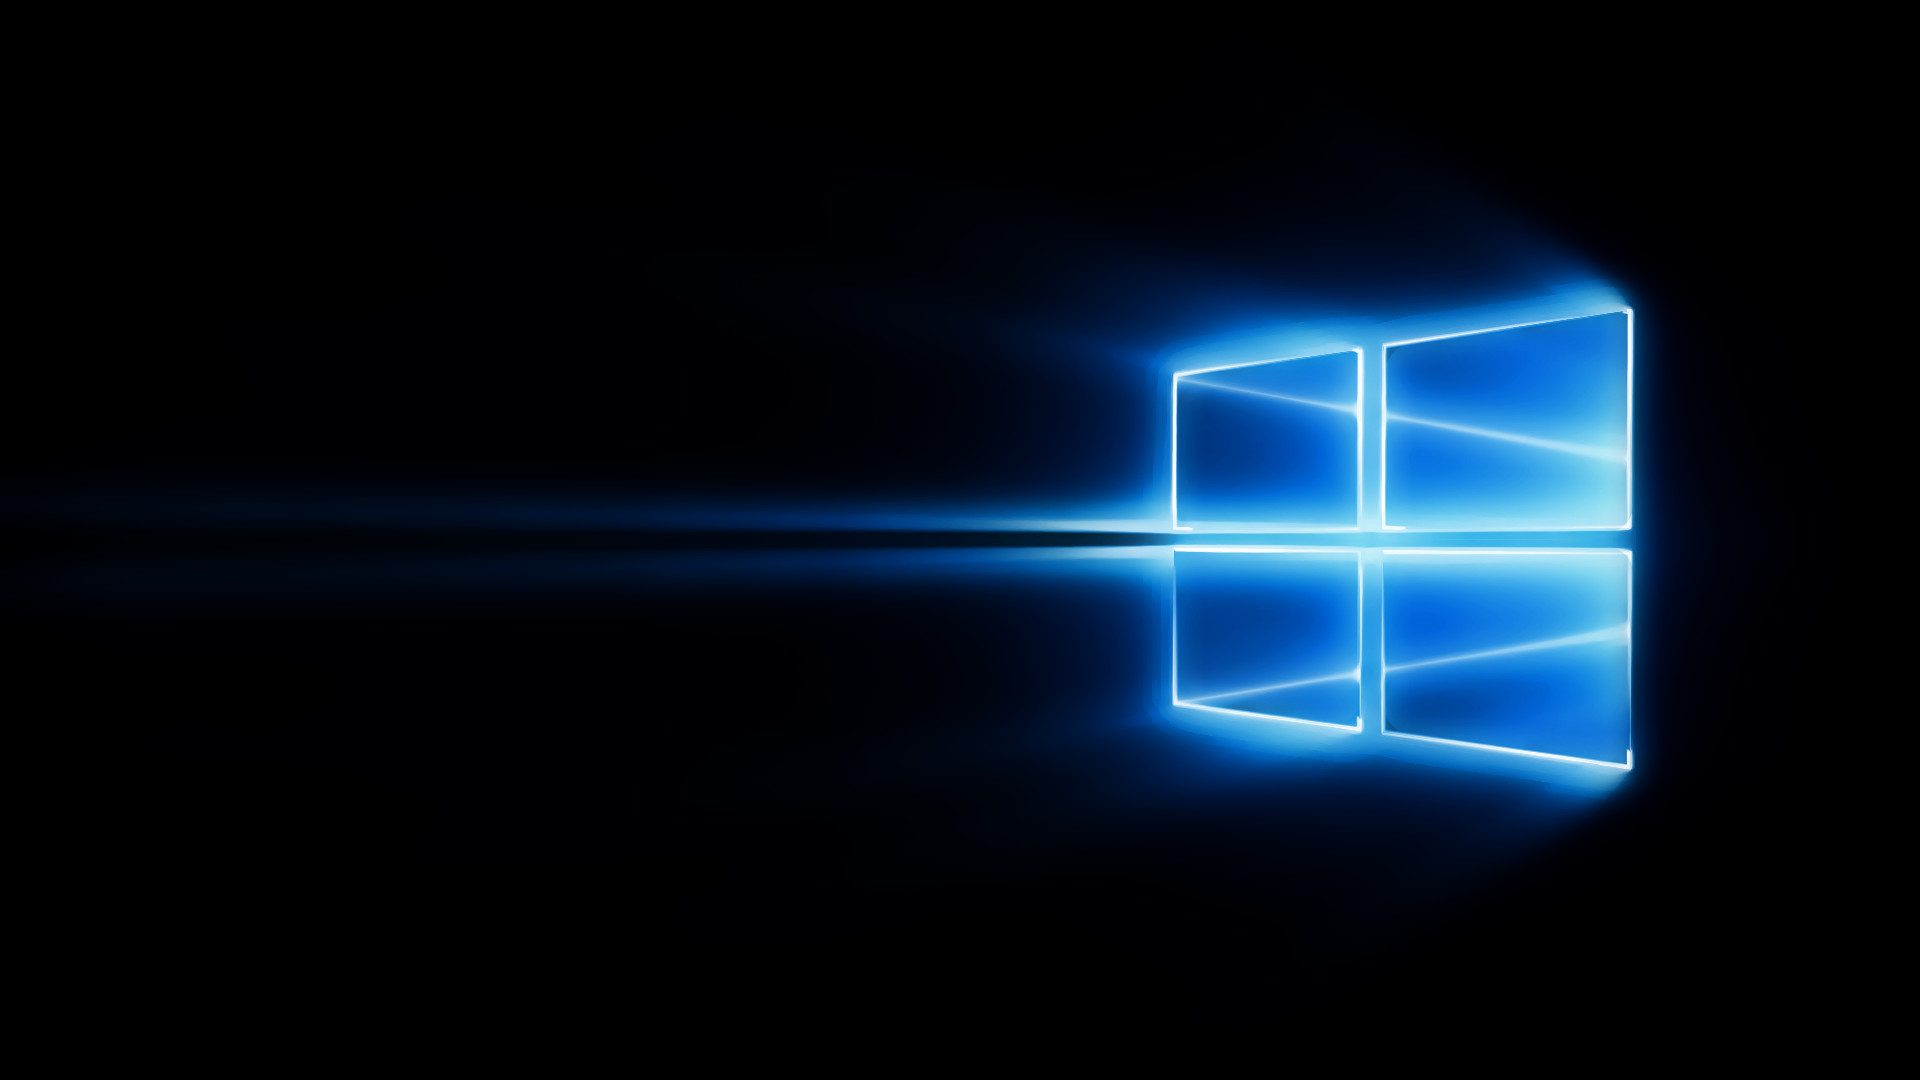 Windows 10 Logo Hd Wallpaper 74 Images